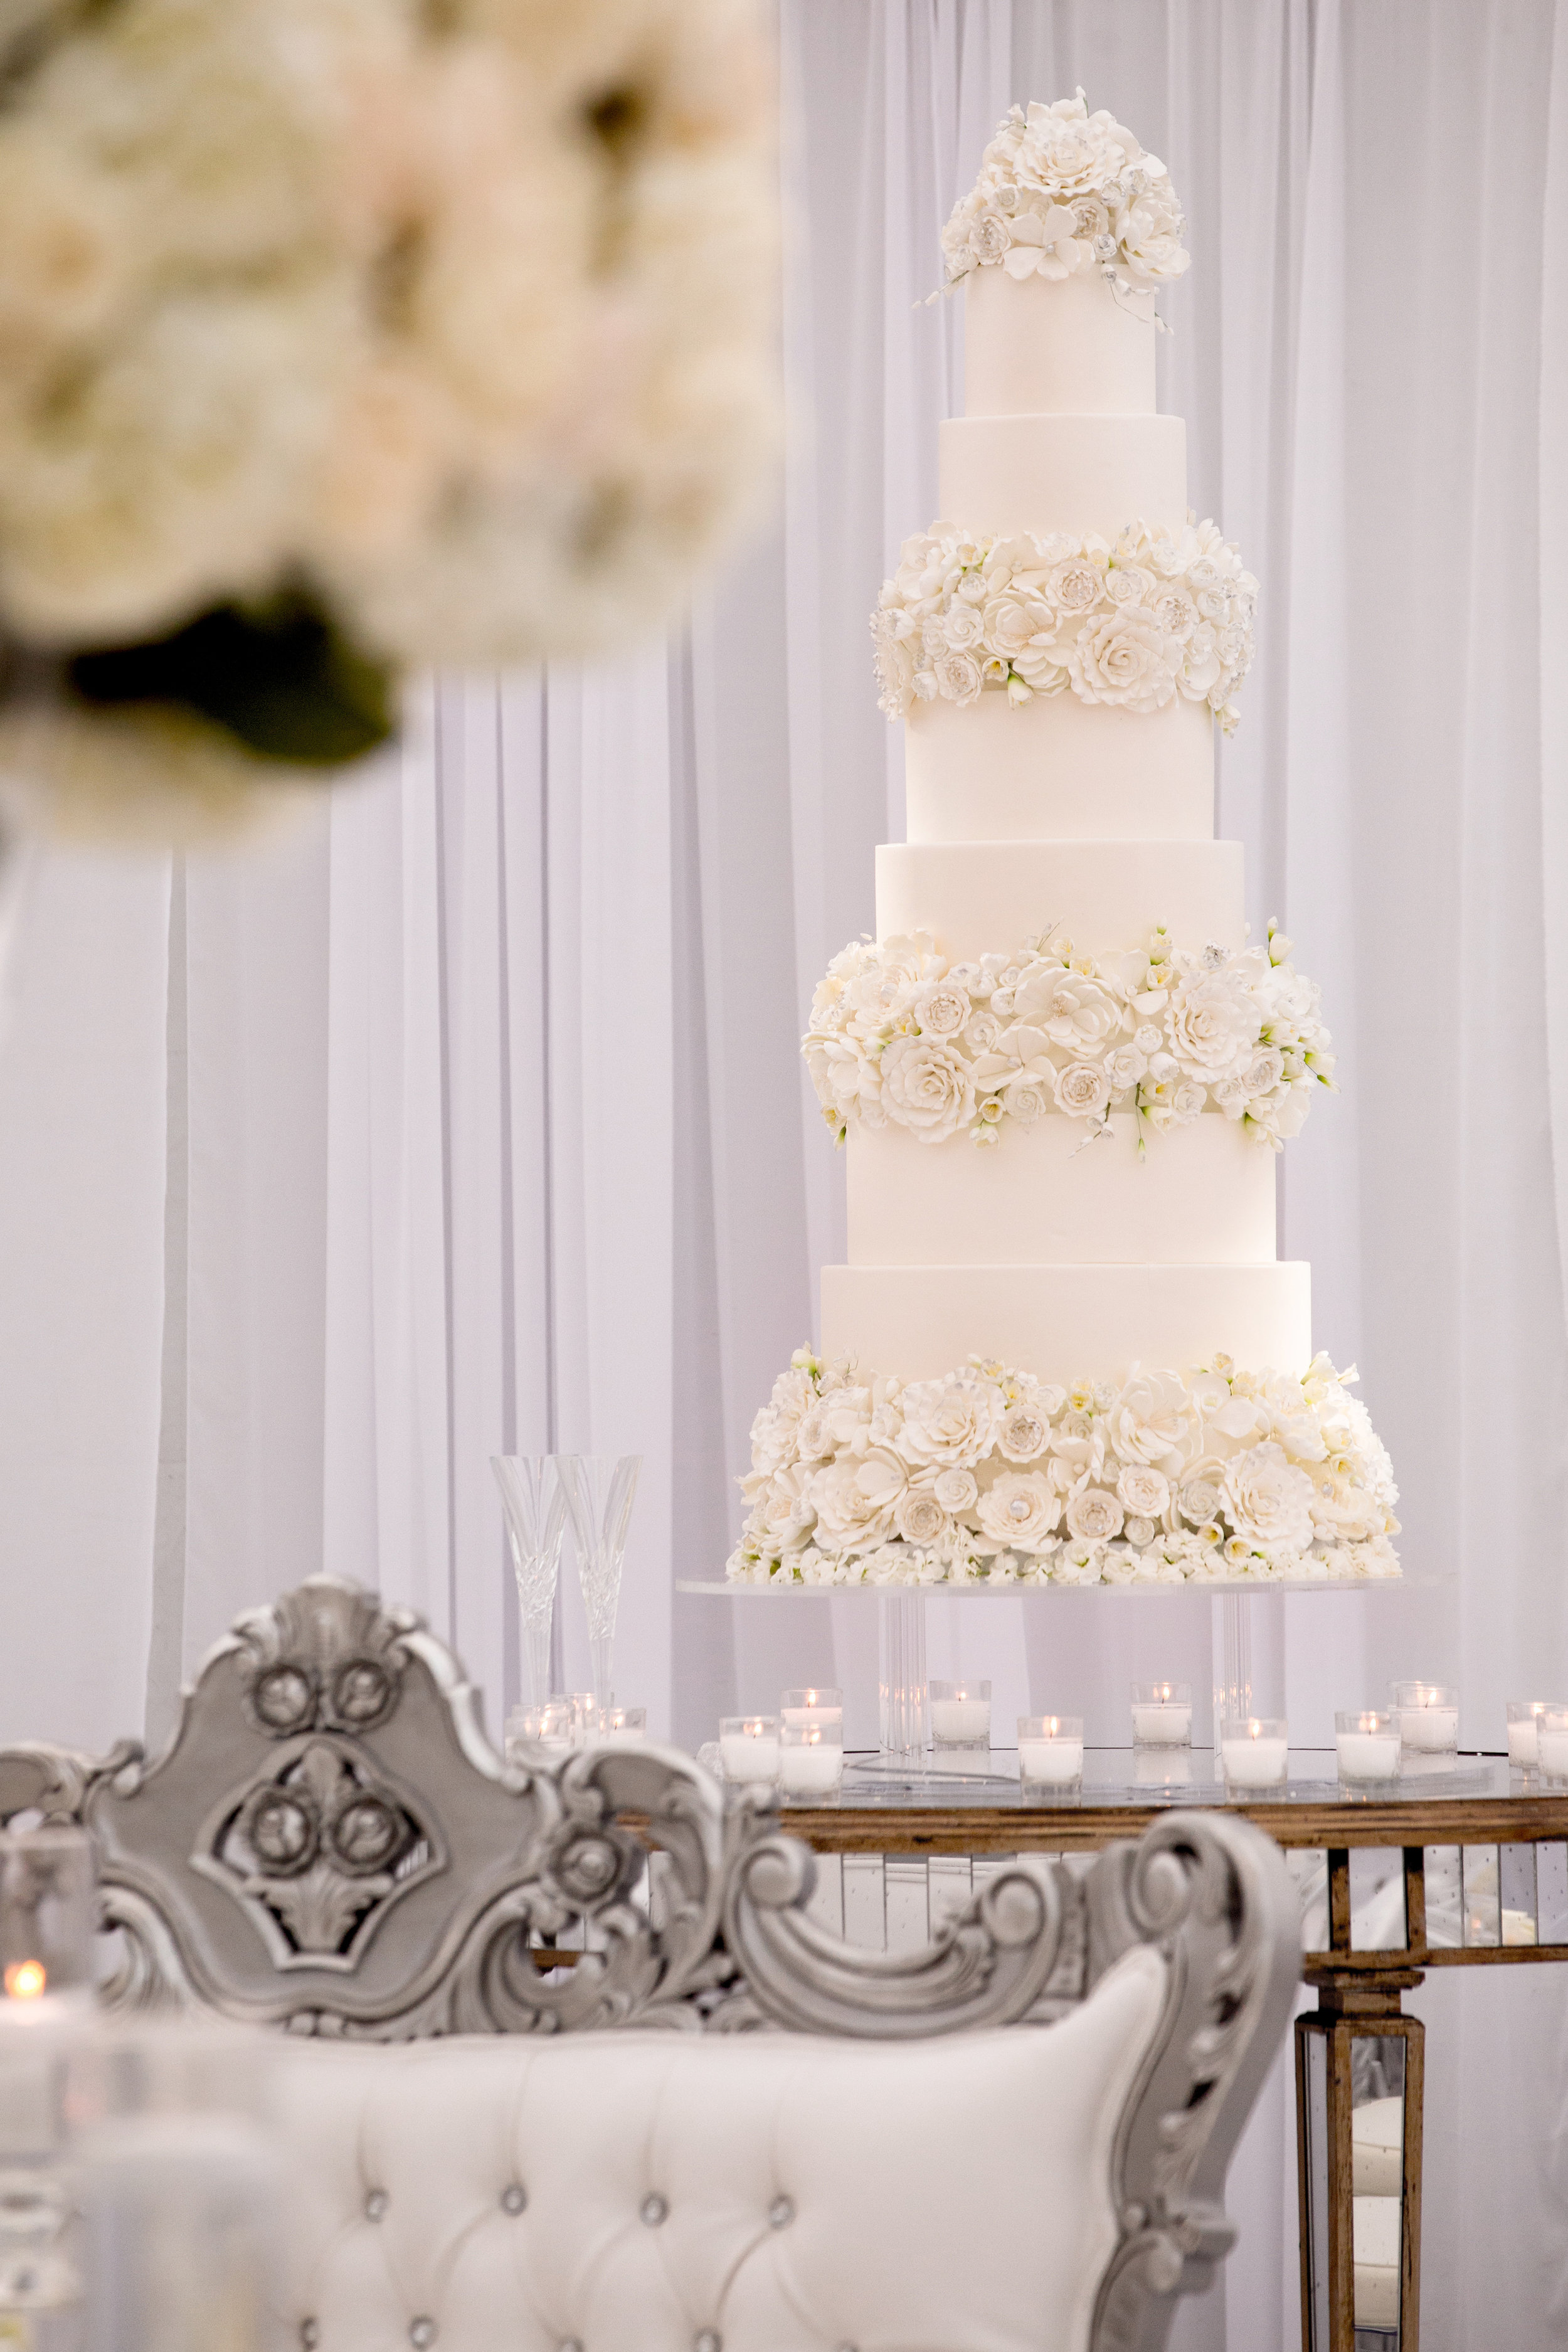 Cake Details - Dallas, Tx - Fall Wedding - Julian Leaver Events